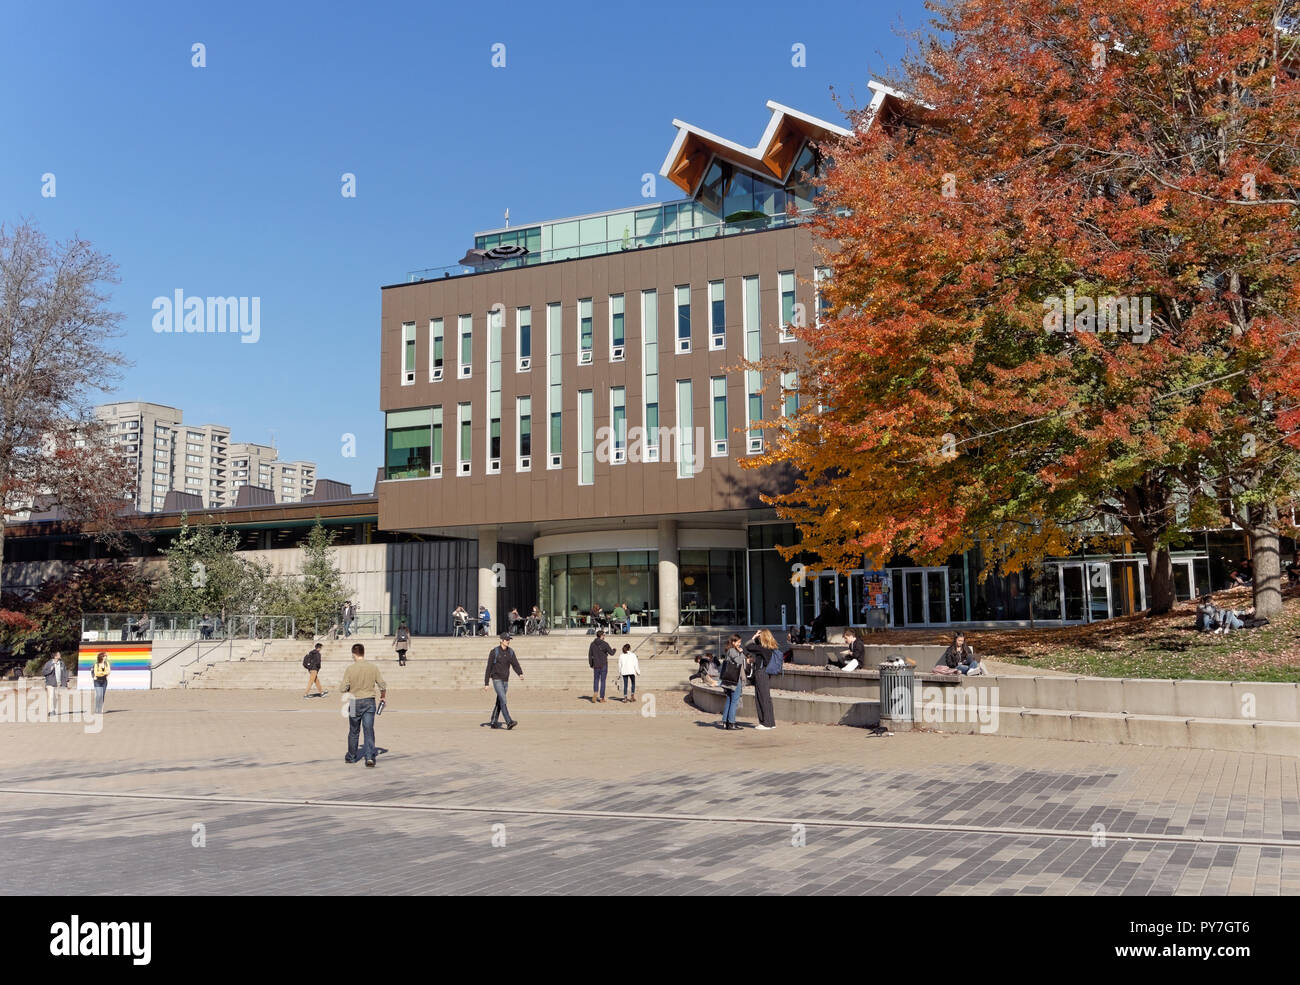 Students on  on the campus of the University of British Columbia on a sunny day in the fall, Vancouver, BC, Canada - Stock Image